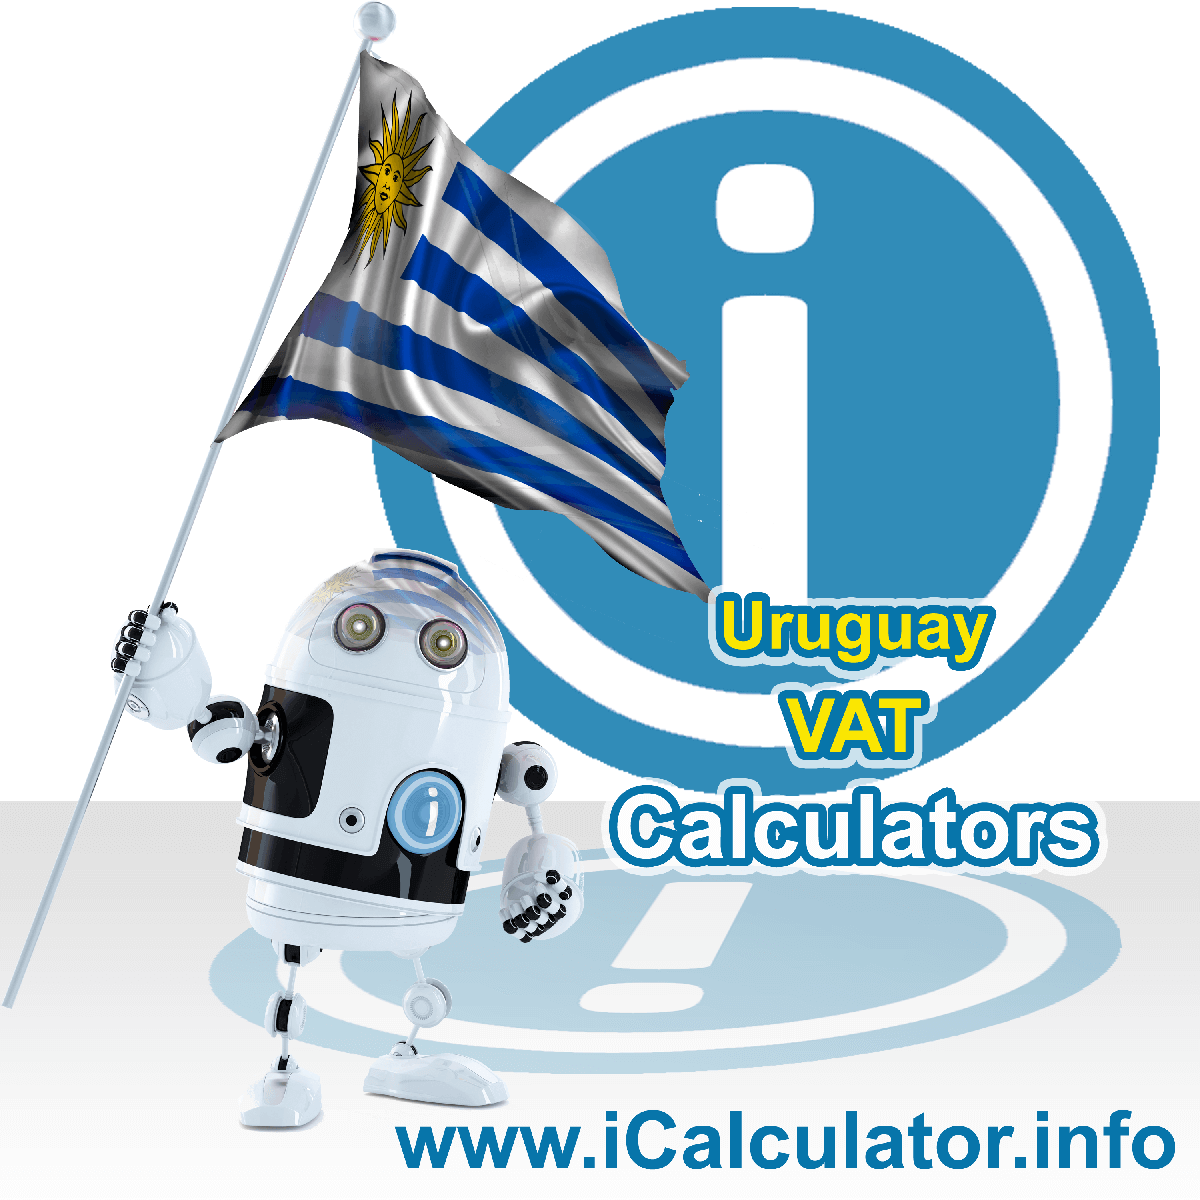 Uruguay VAT Calculator. This image shows the Uruguay flag and information relating to the VAT formula used for calculating Value Added Tax in Uruguay using the Uruguay VAT Calculator in 2021